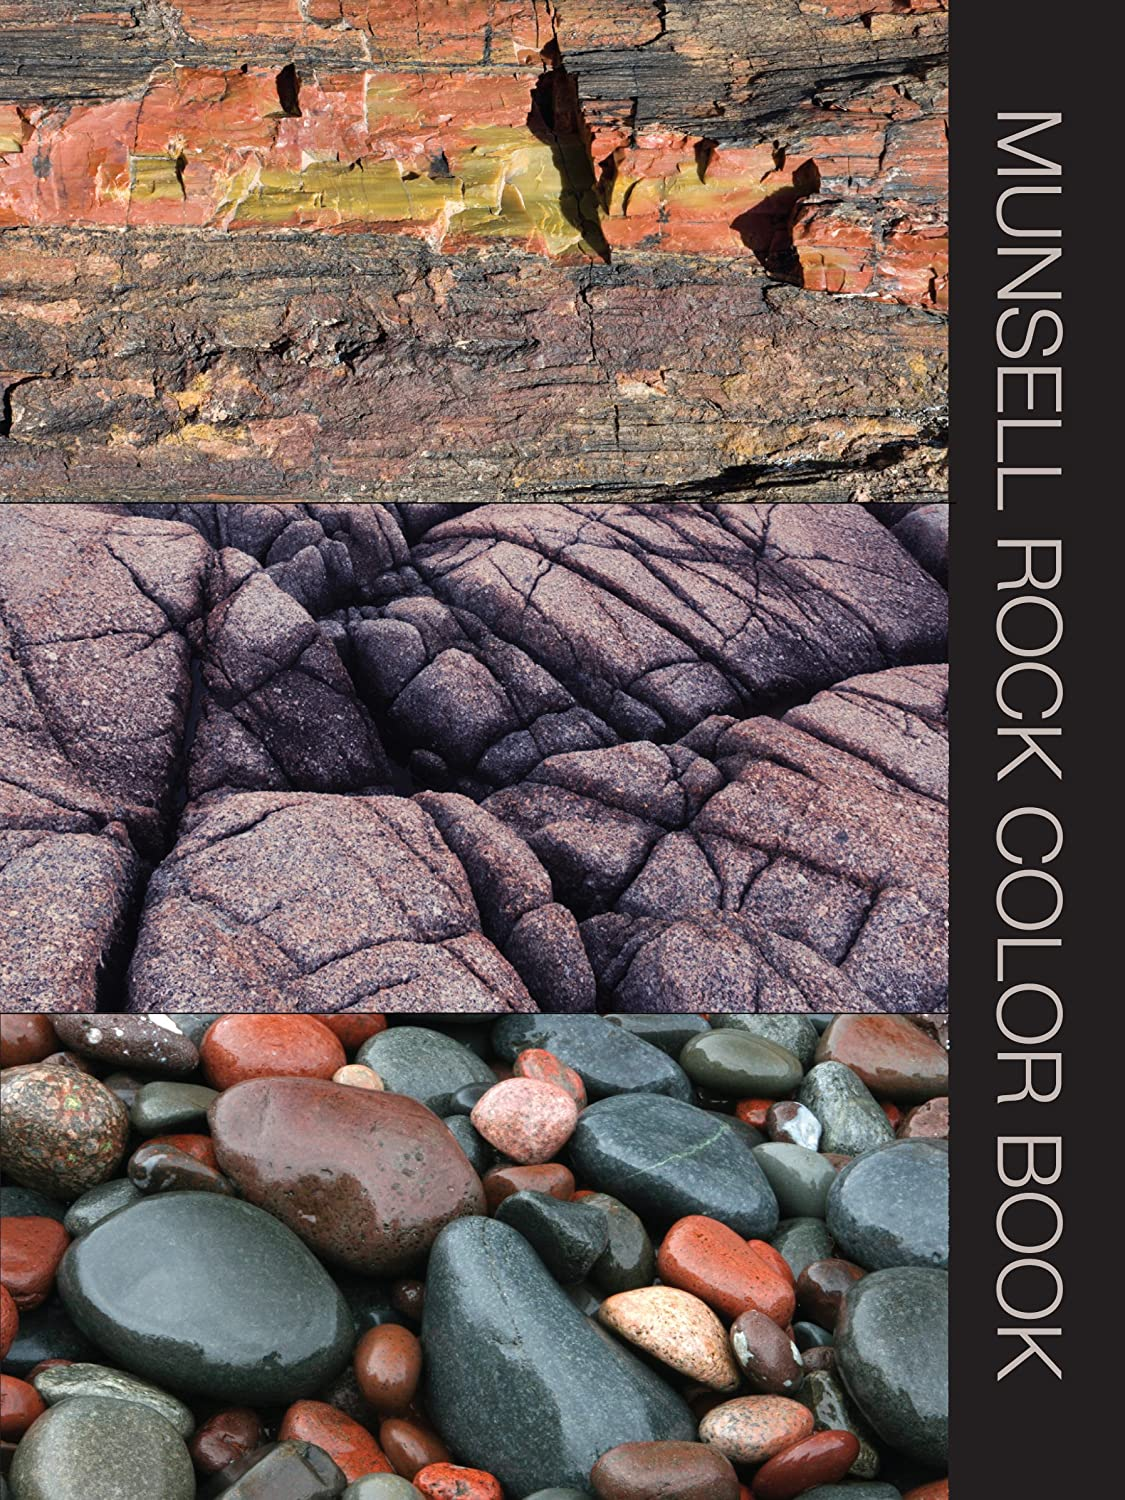 Amazon.com: X-Rite Munsell, Rock Book of Color (M50315B): Home ...